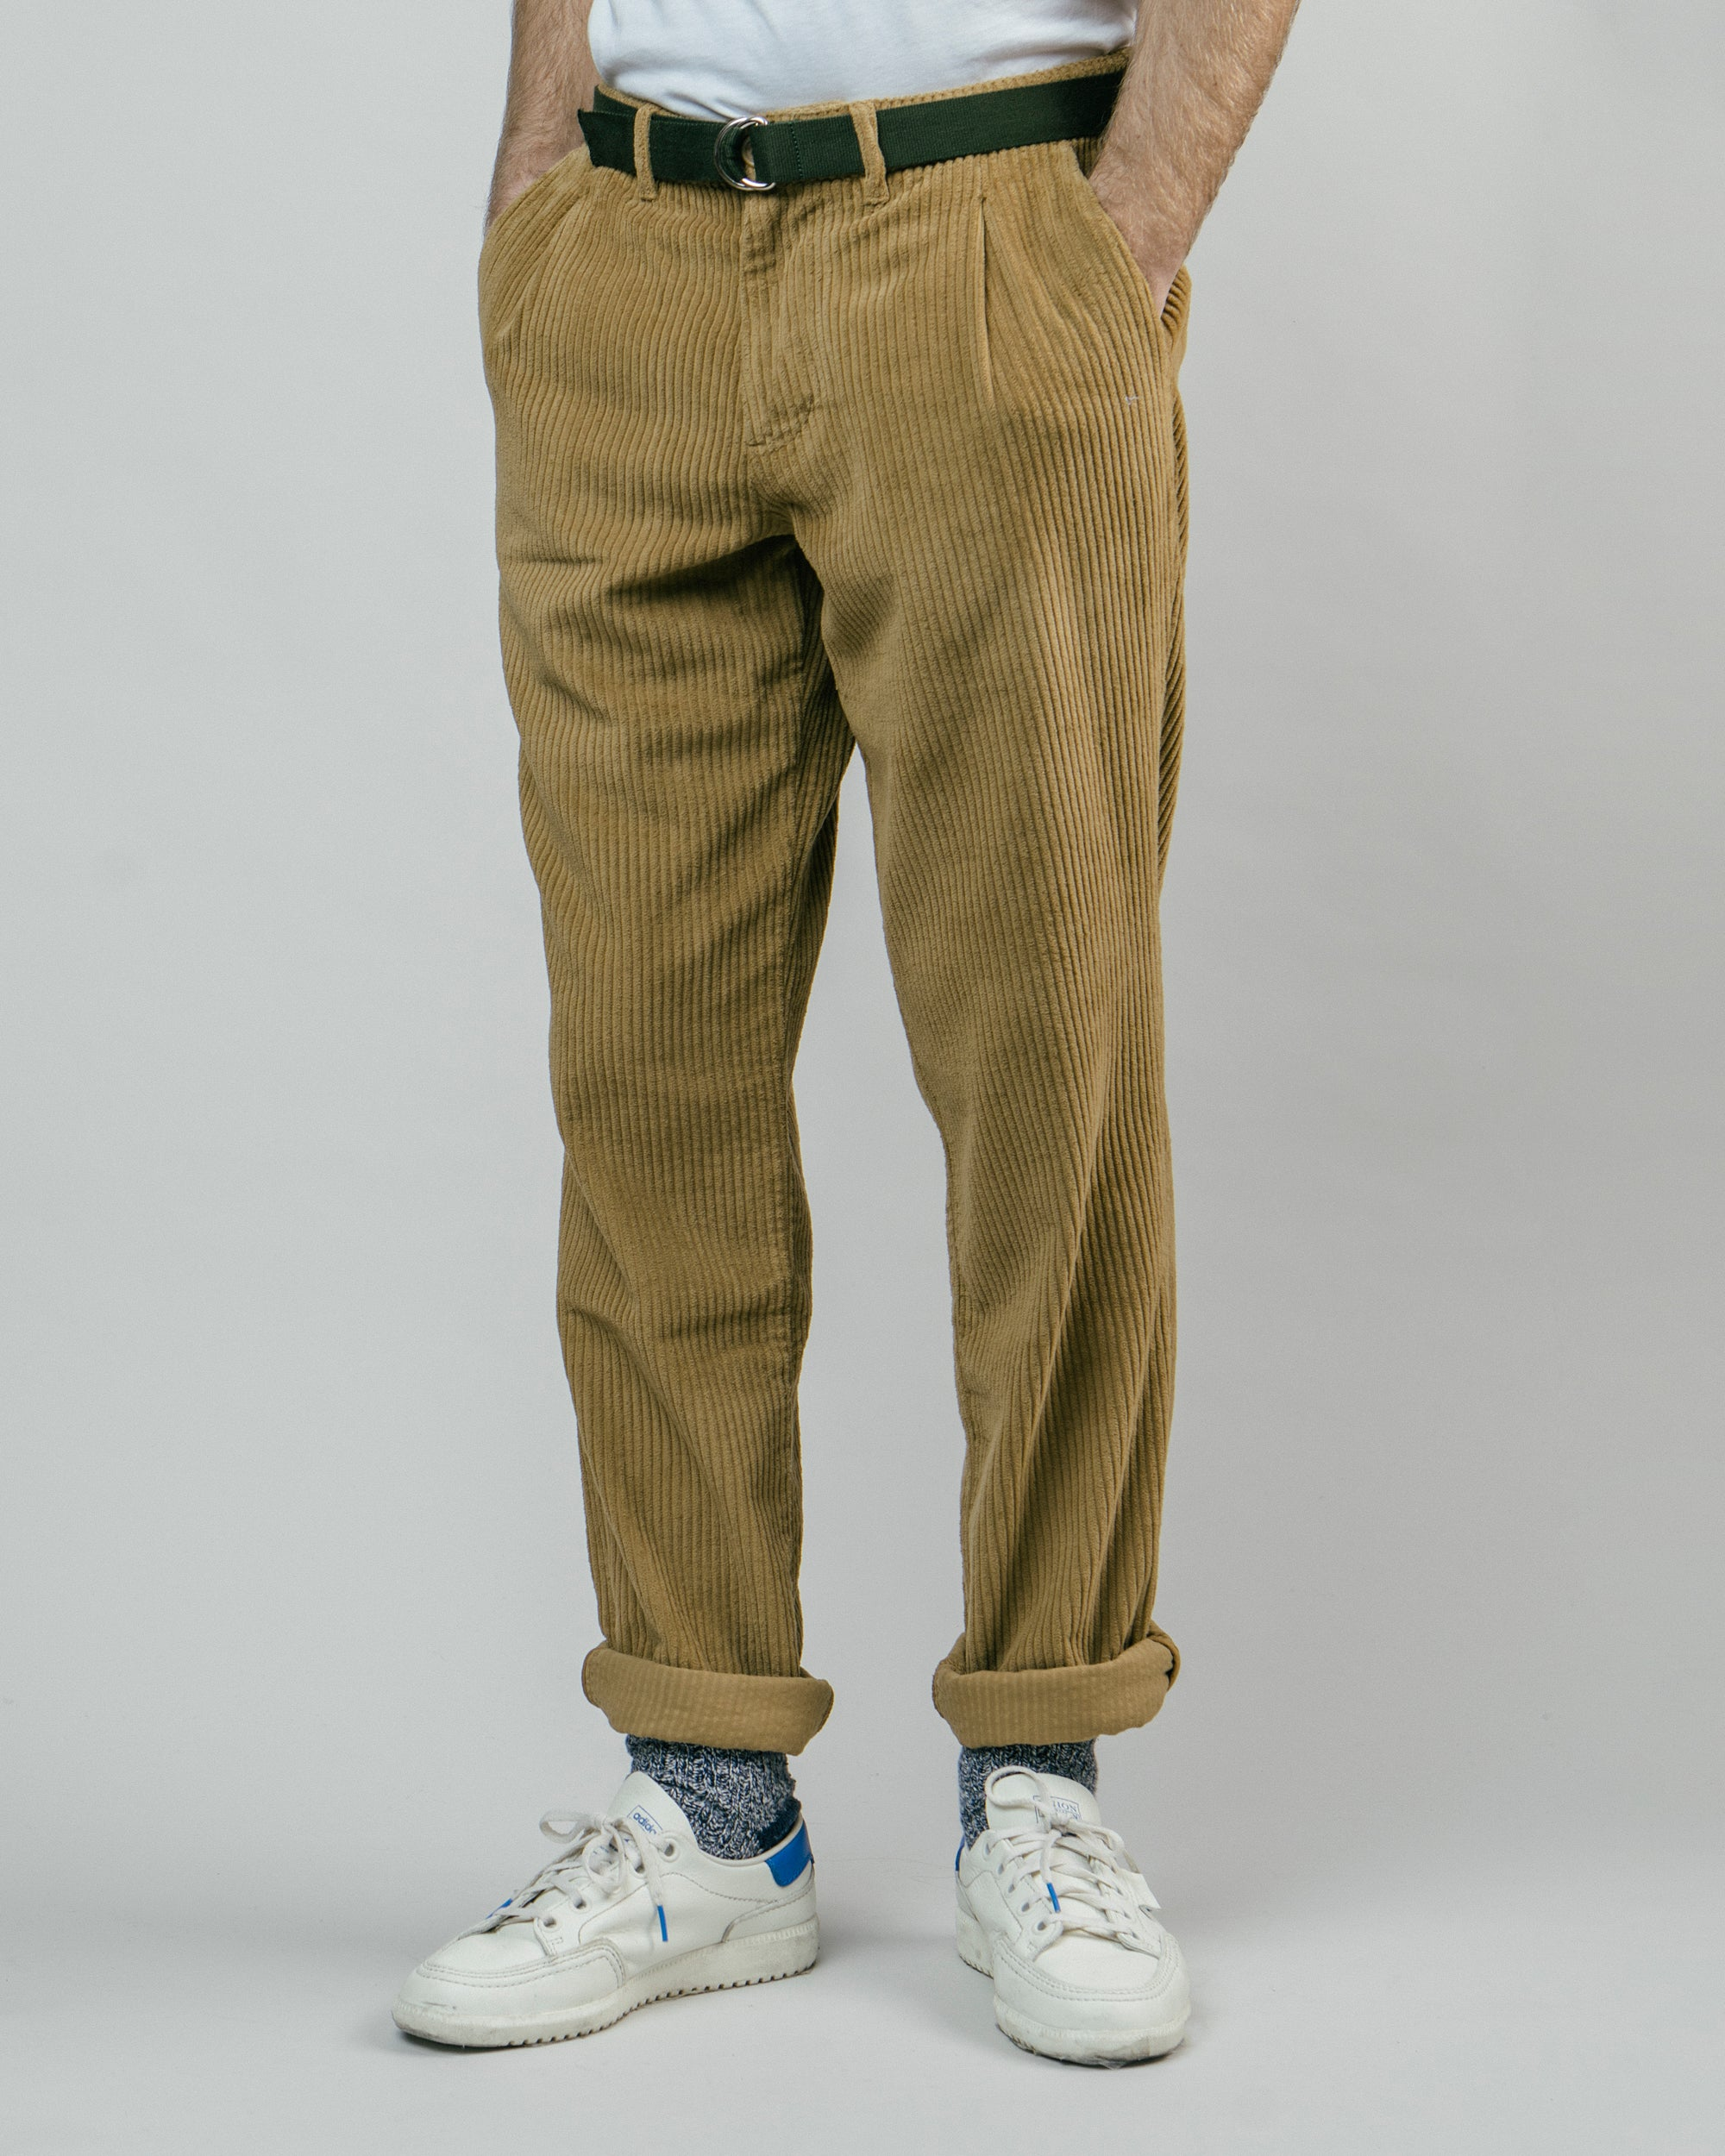 Shop sustainable and fairtrade apparel online. Model Corduroy Pants Camel.Official Brava Fabrics store, worldwide express shipping.